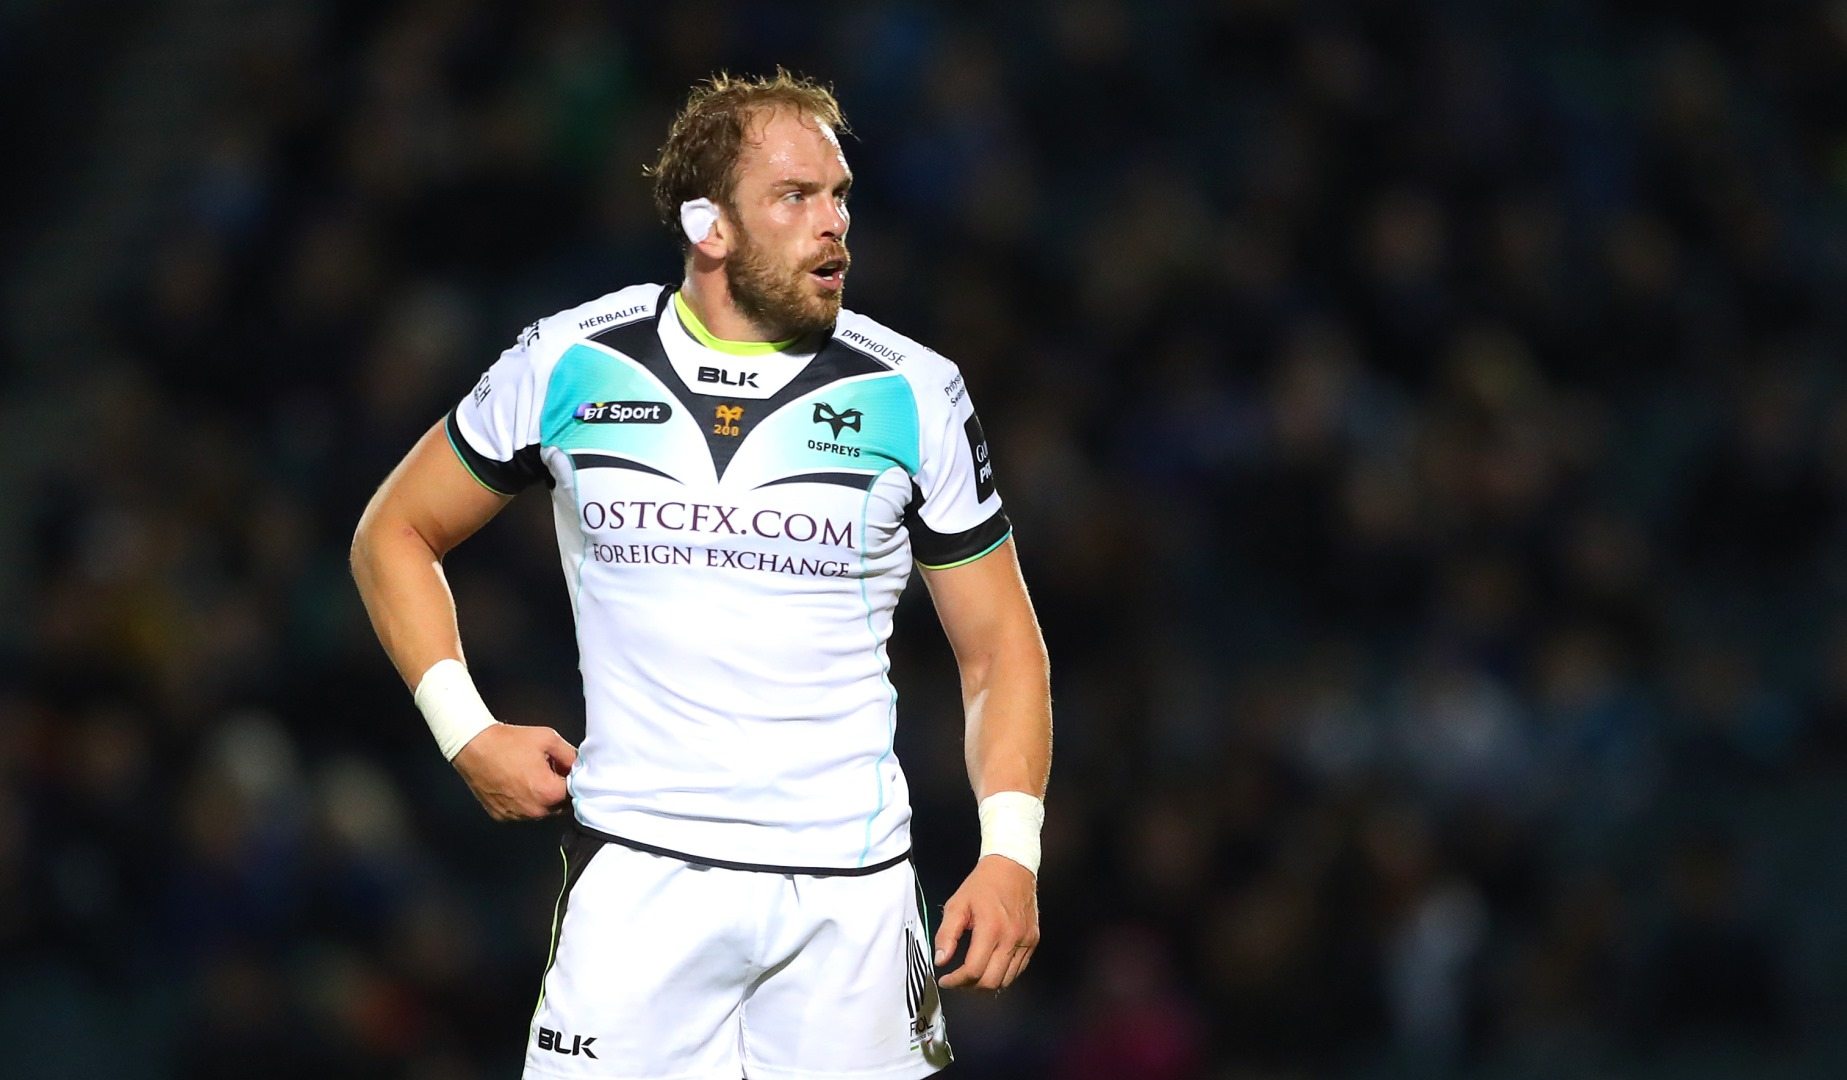 Best reactions from this week's European Rugby